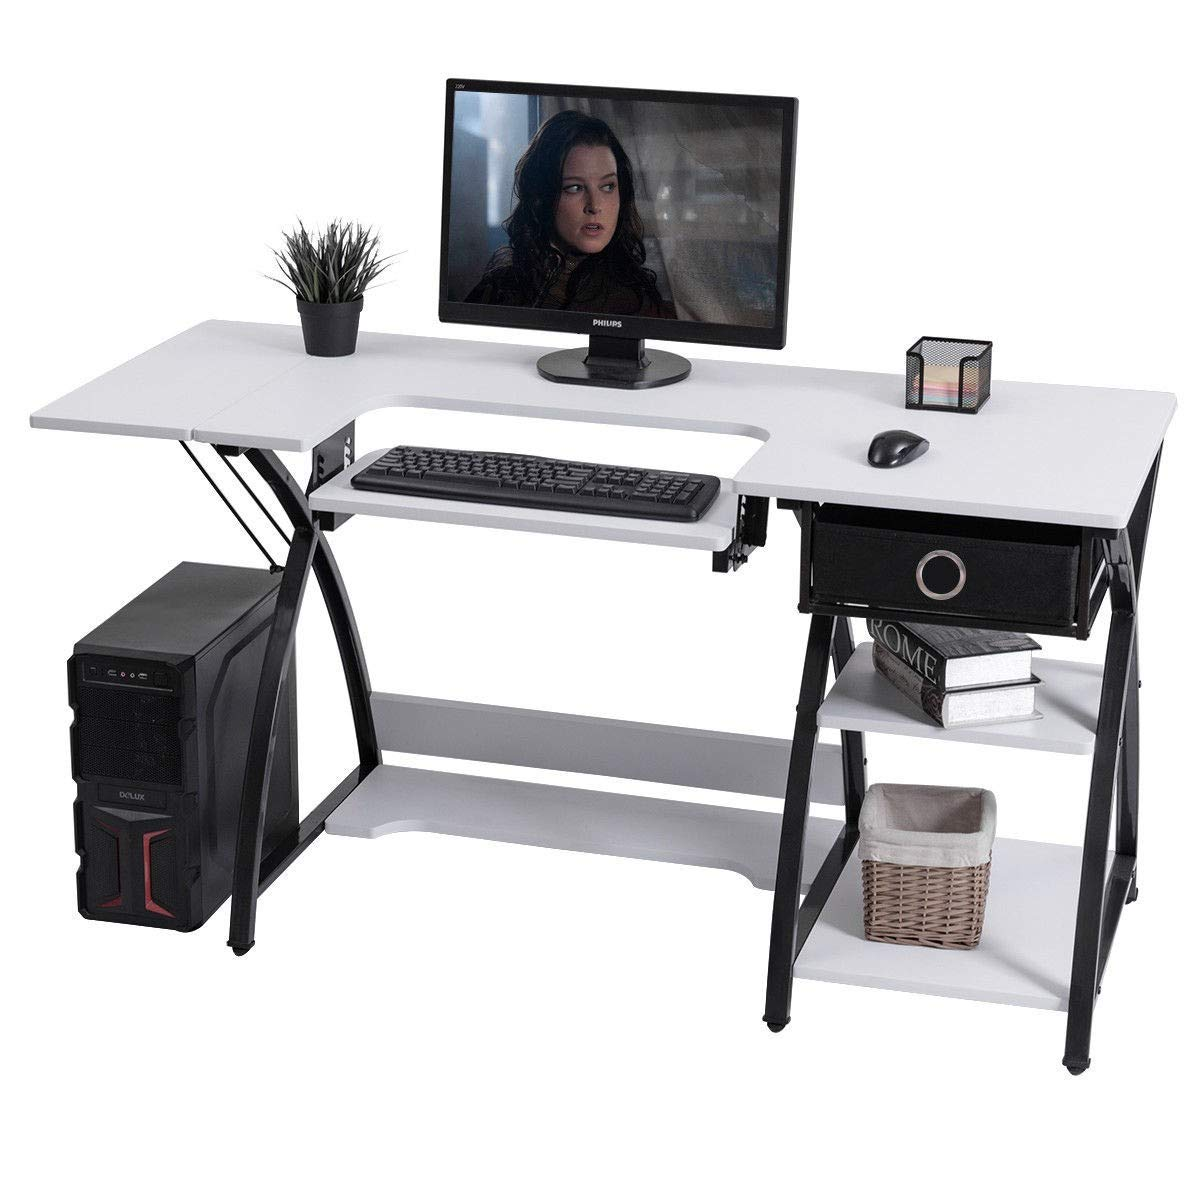 F2C Rolling Drawing Desk Craft Station Art Craft Hobby Drafting Table Desk Glass Top with Drawers